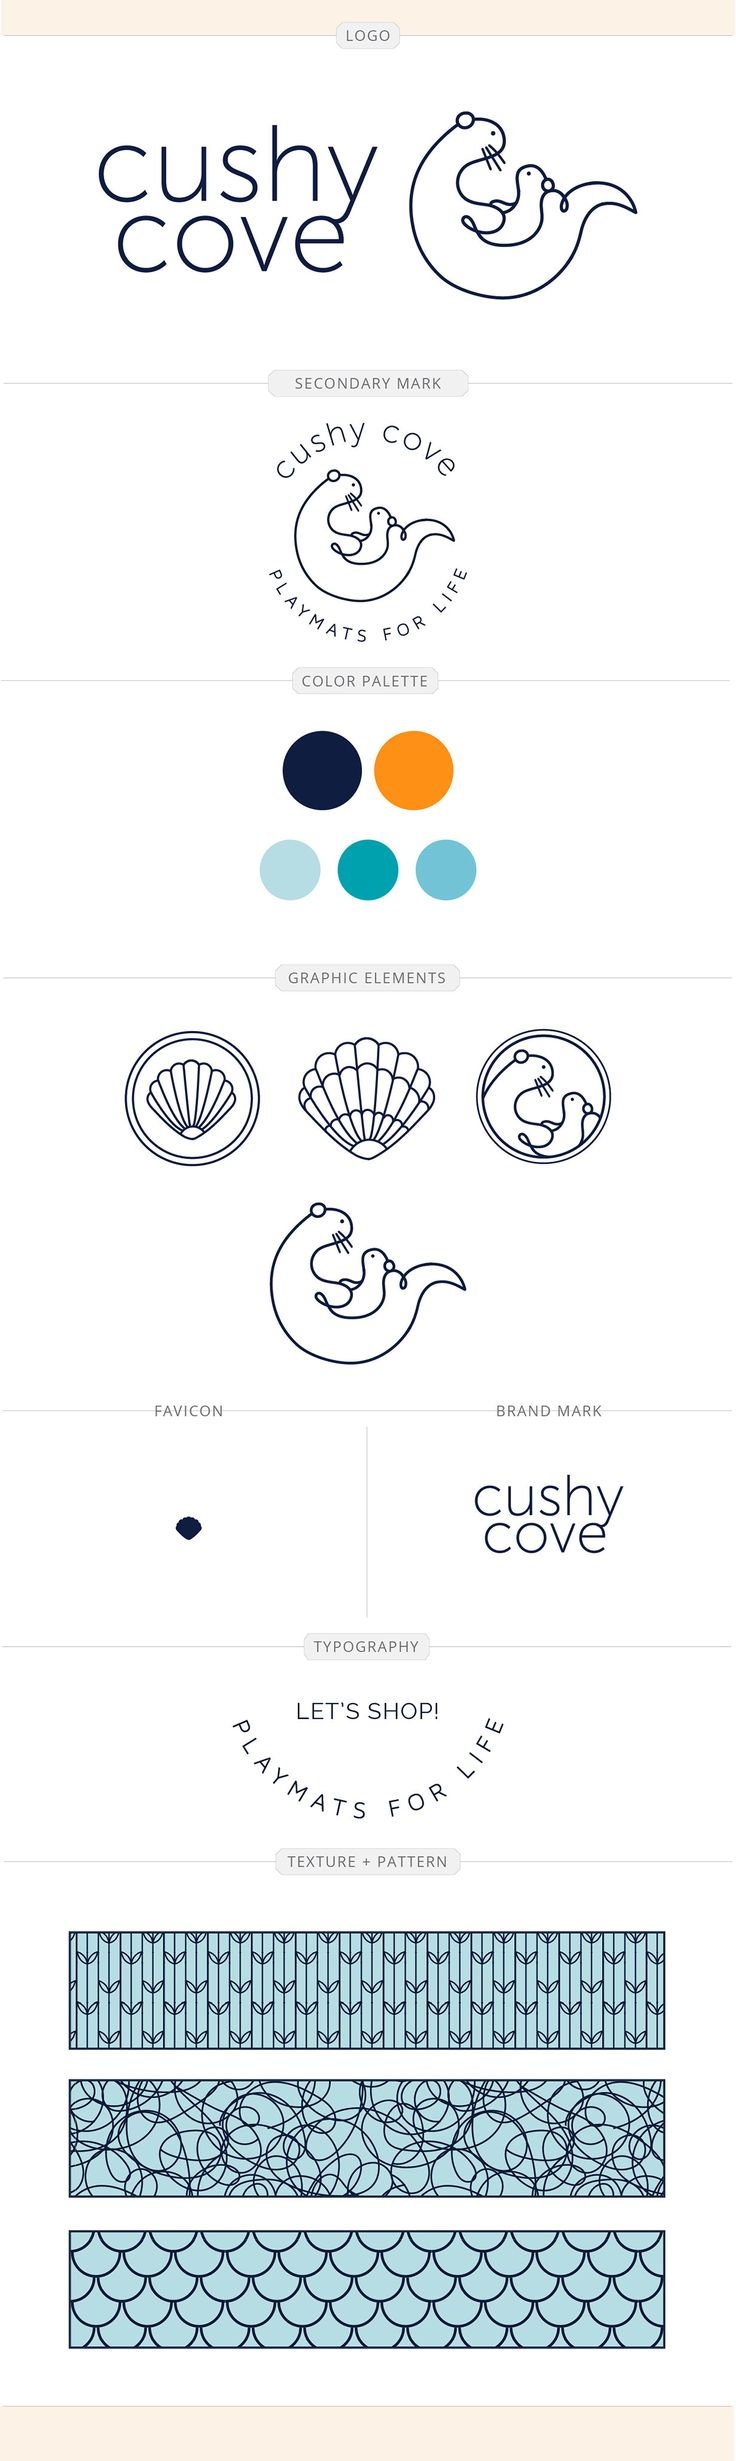 Cushy Cove brand identity design by Aeolidia. Taking success selling on Amazon and turning it into its own brand and online store.